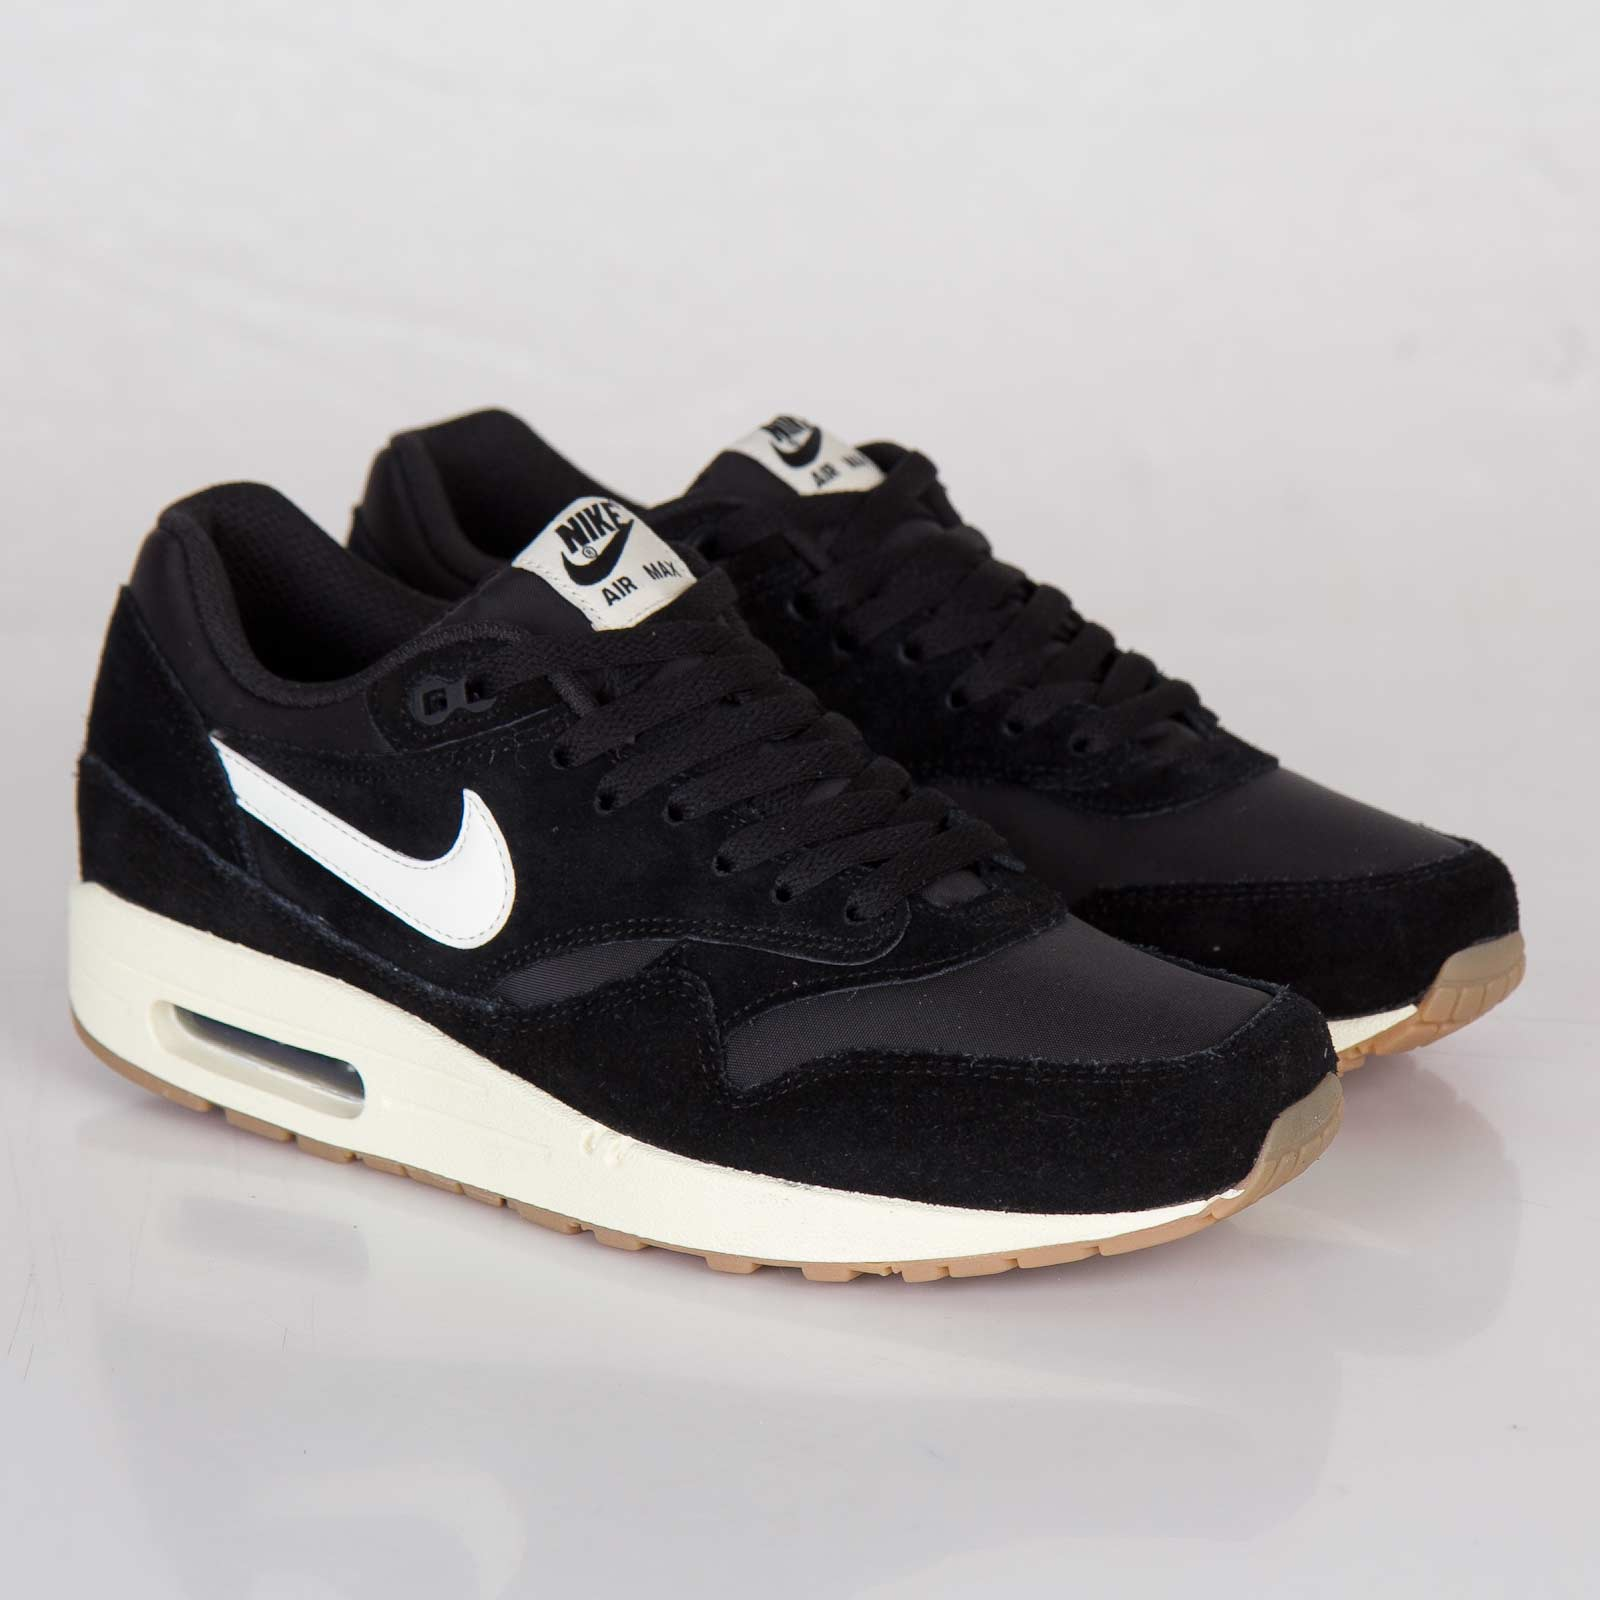 e34292d94e reduced nike air max one essential black gum 89c13 26fc4